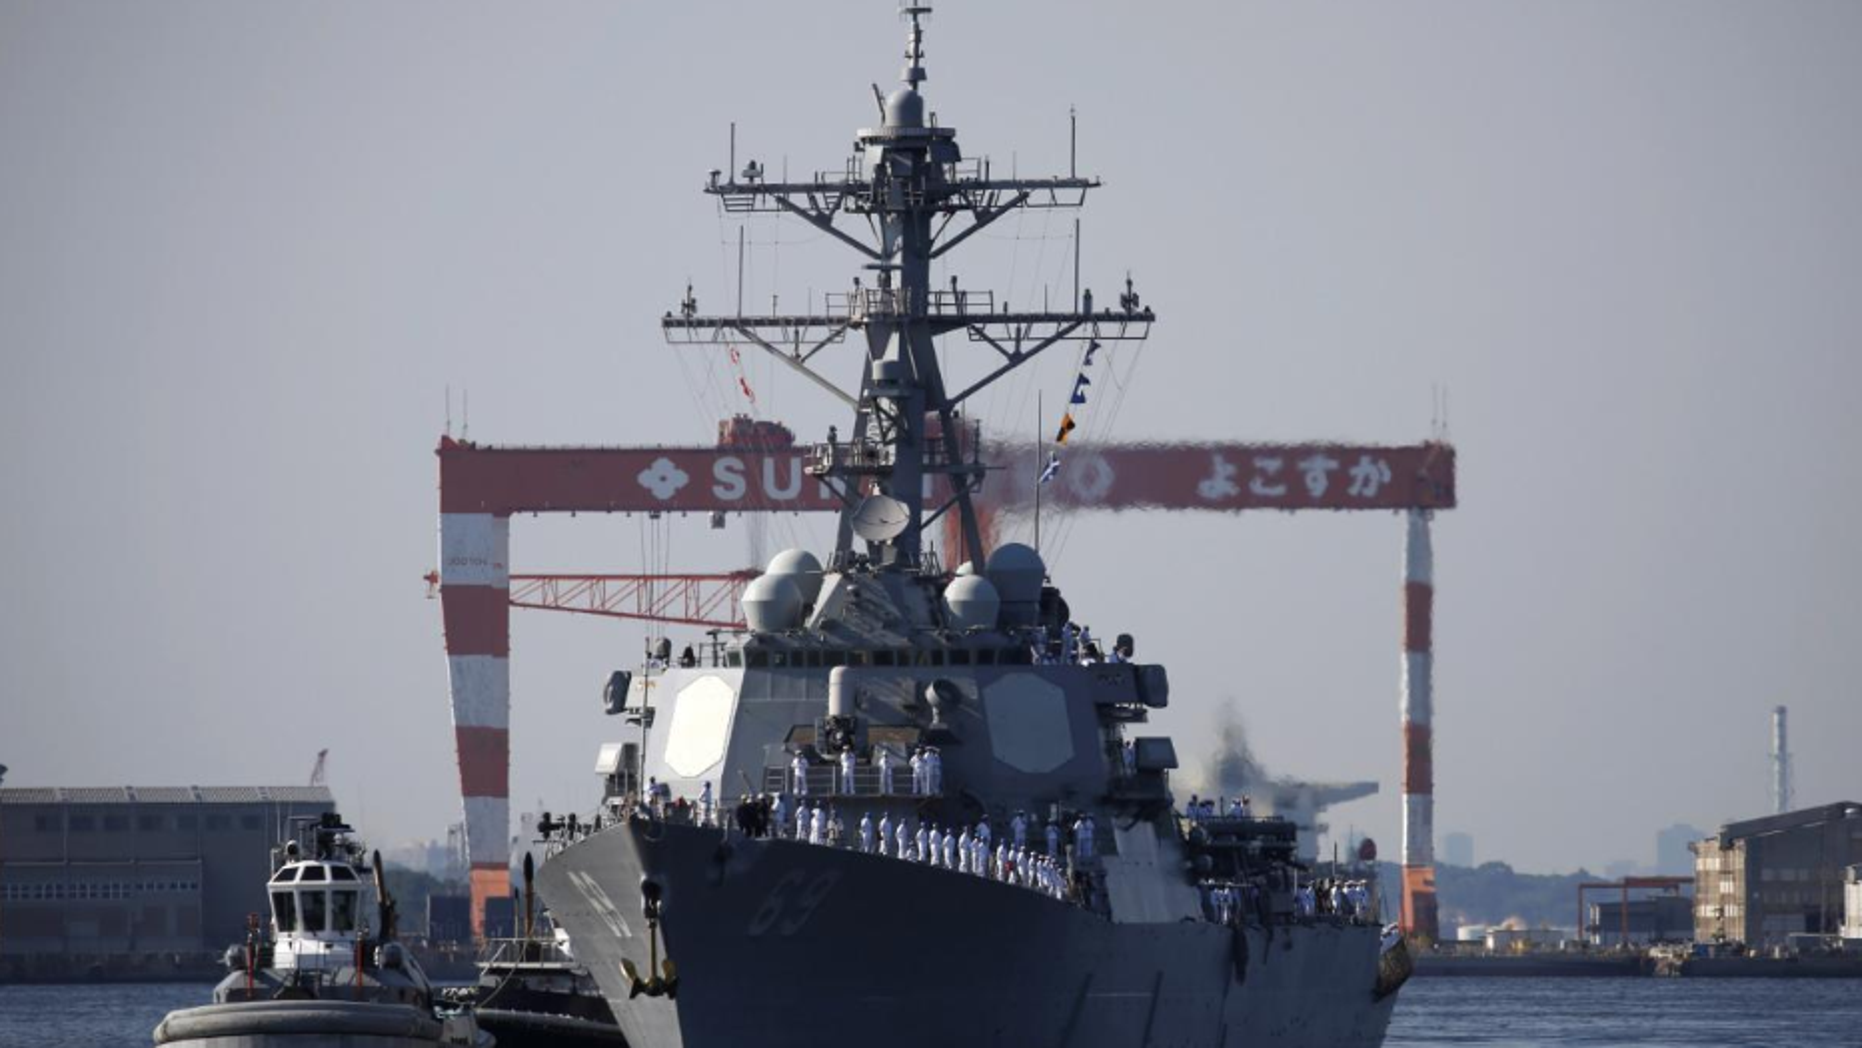 The U.S. guided-missile destroyer USS Milius (DDG69) arrives to join Forward Deployed Naval Forces at the U.S. naval base in Yokosuka, Japan May 22, 2018.